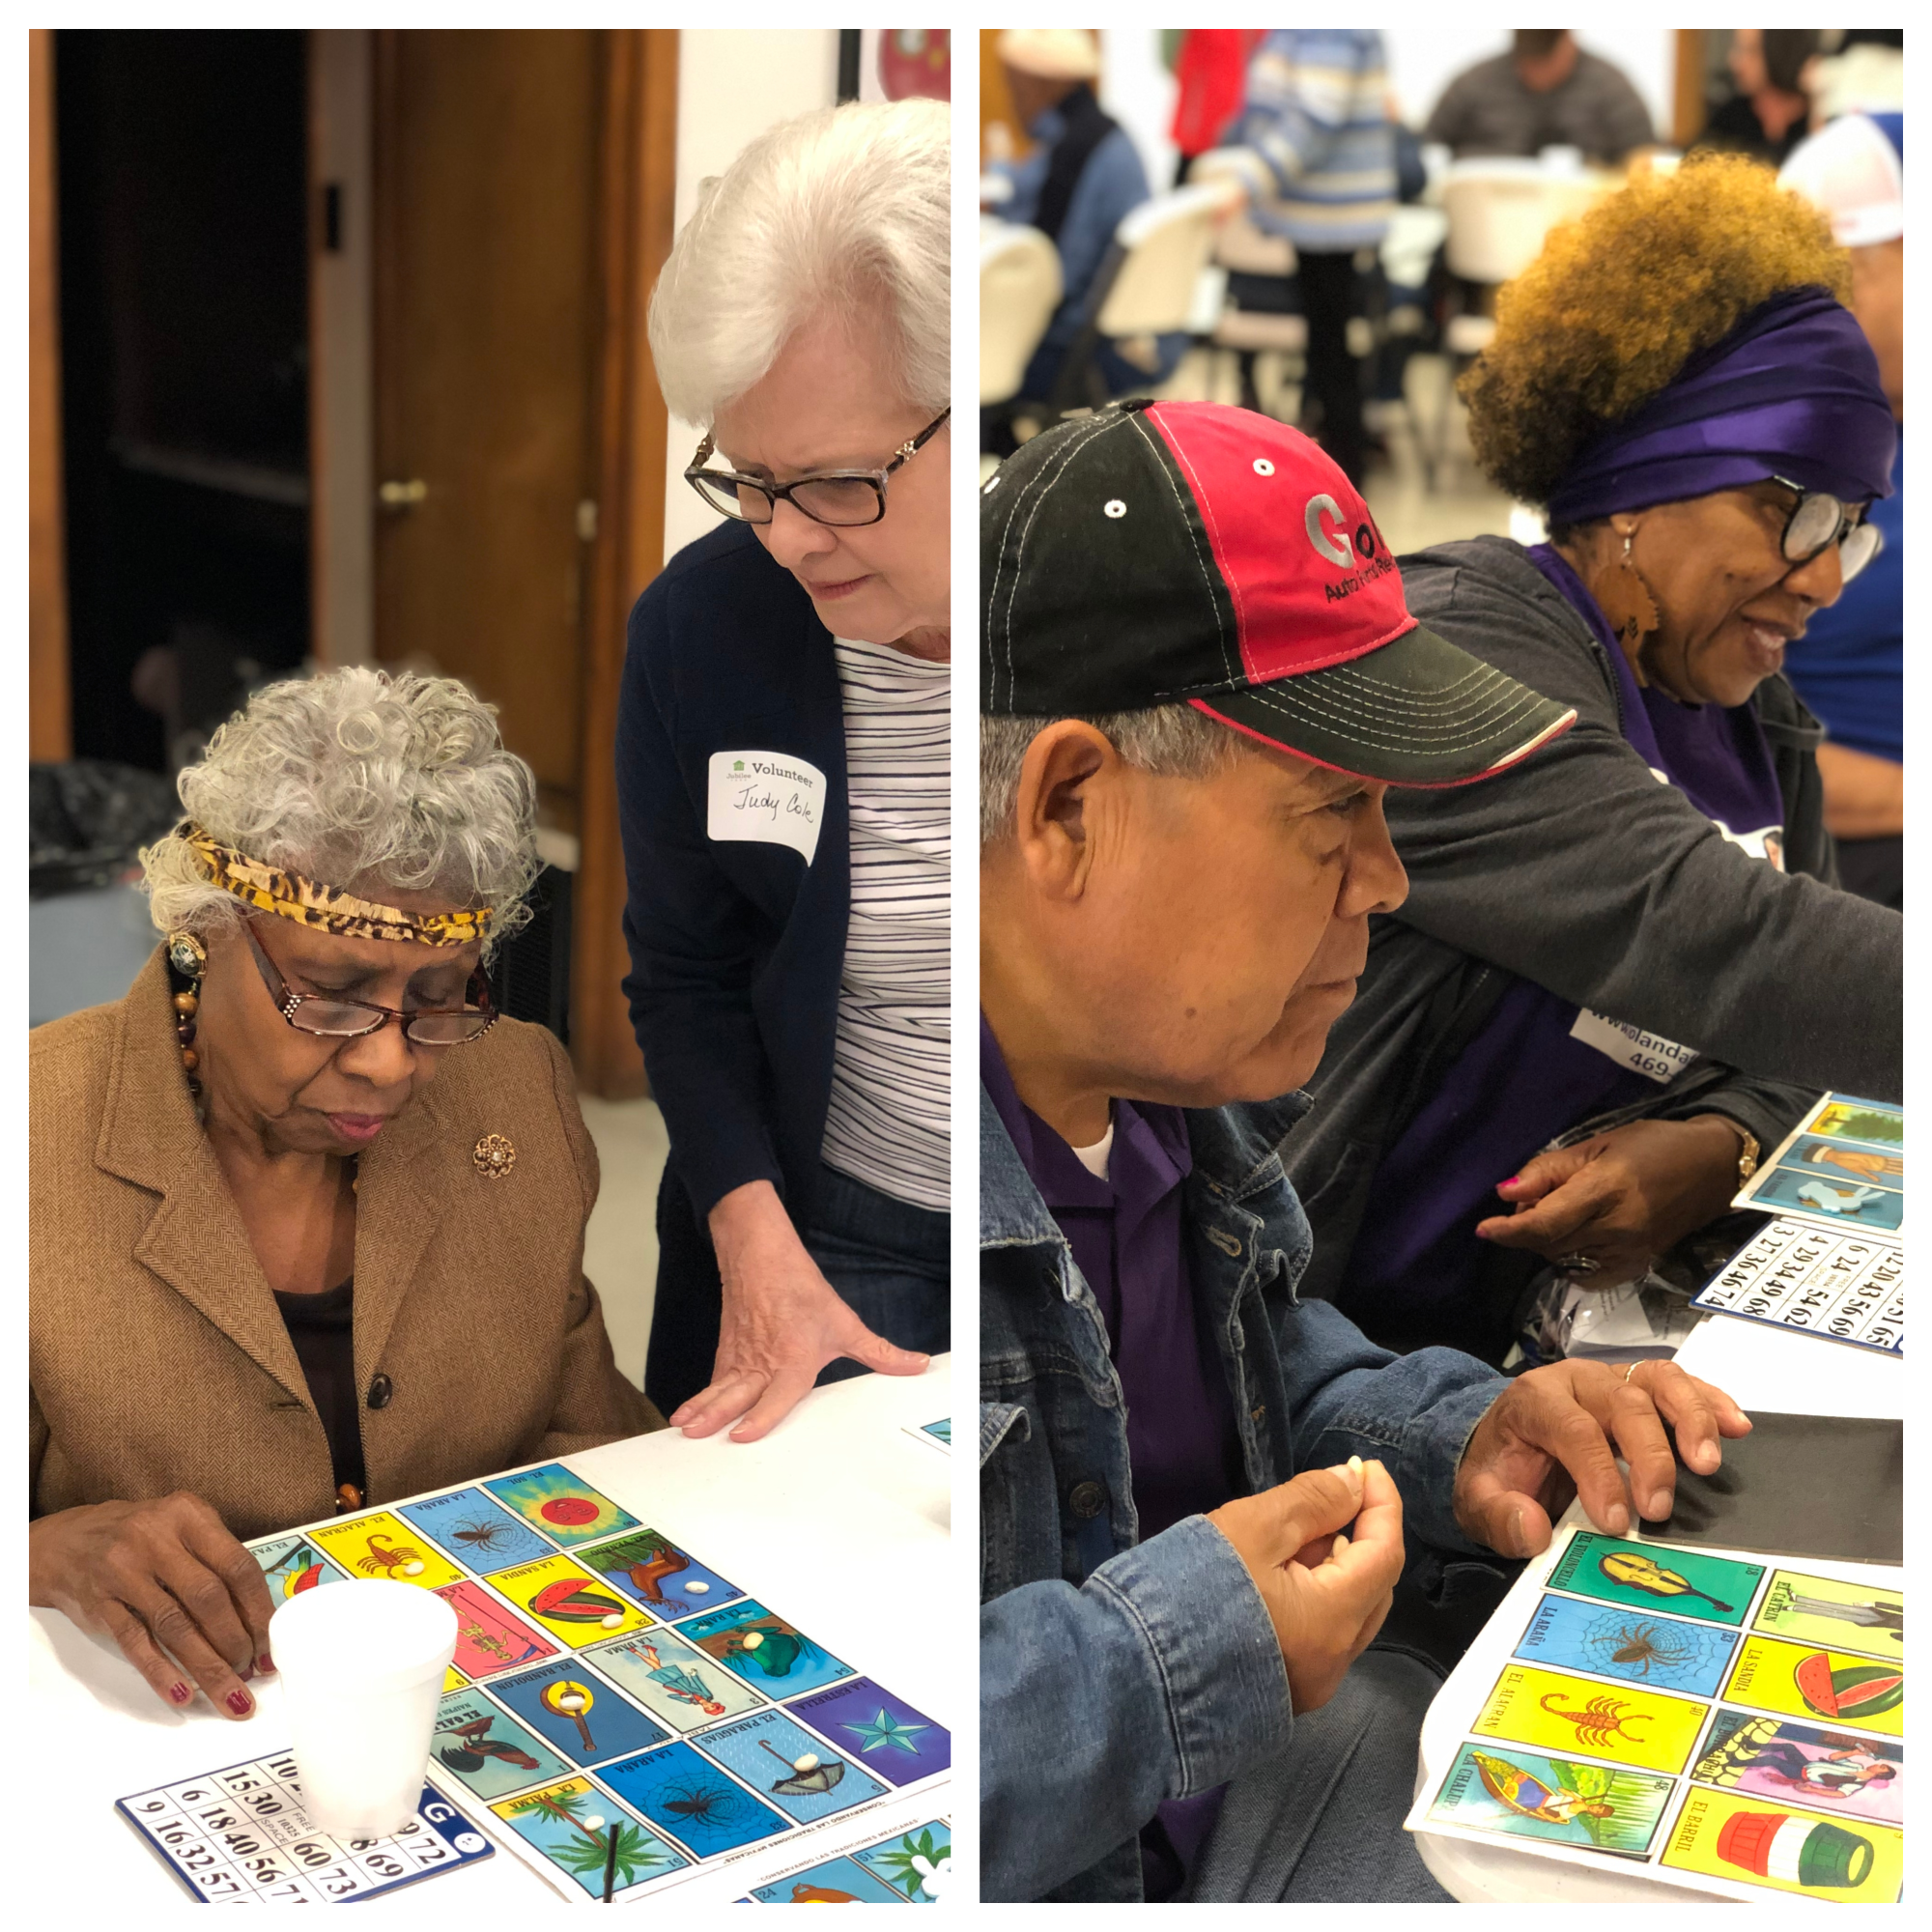 Want to join in the fun? Sign up to volunteer with Jubilee senior programs and become a member of the Senior Brigade! Email  volunteer@jubileecenter.org  to get started.